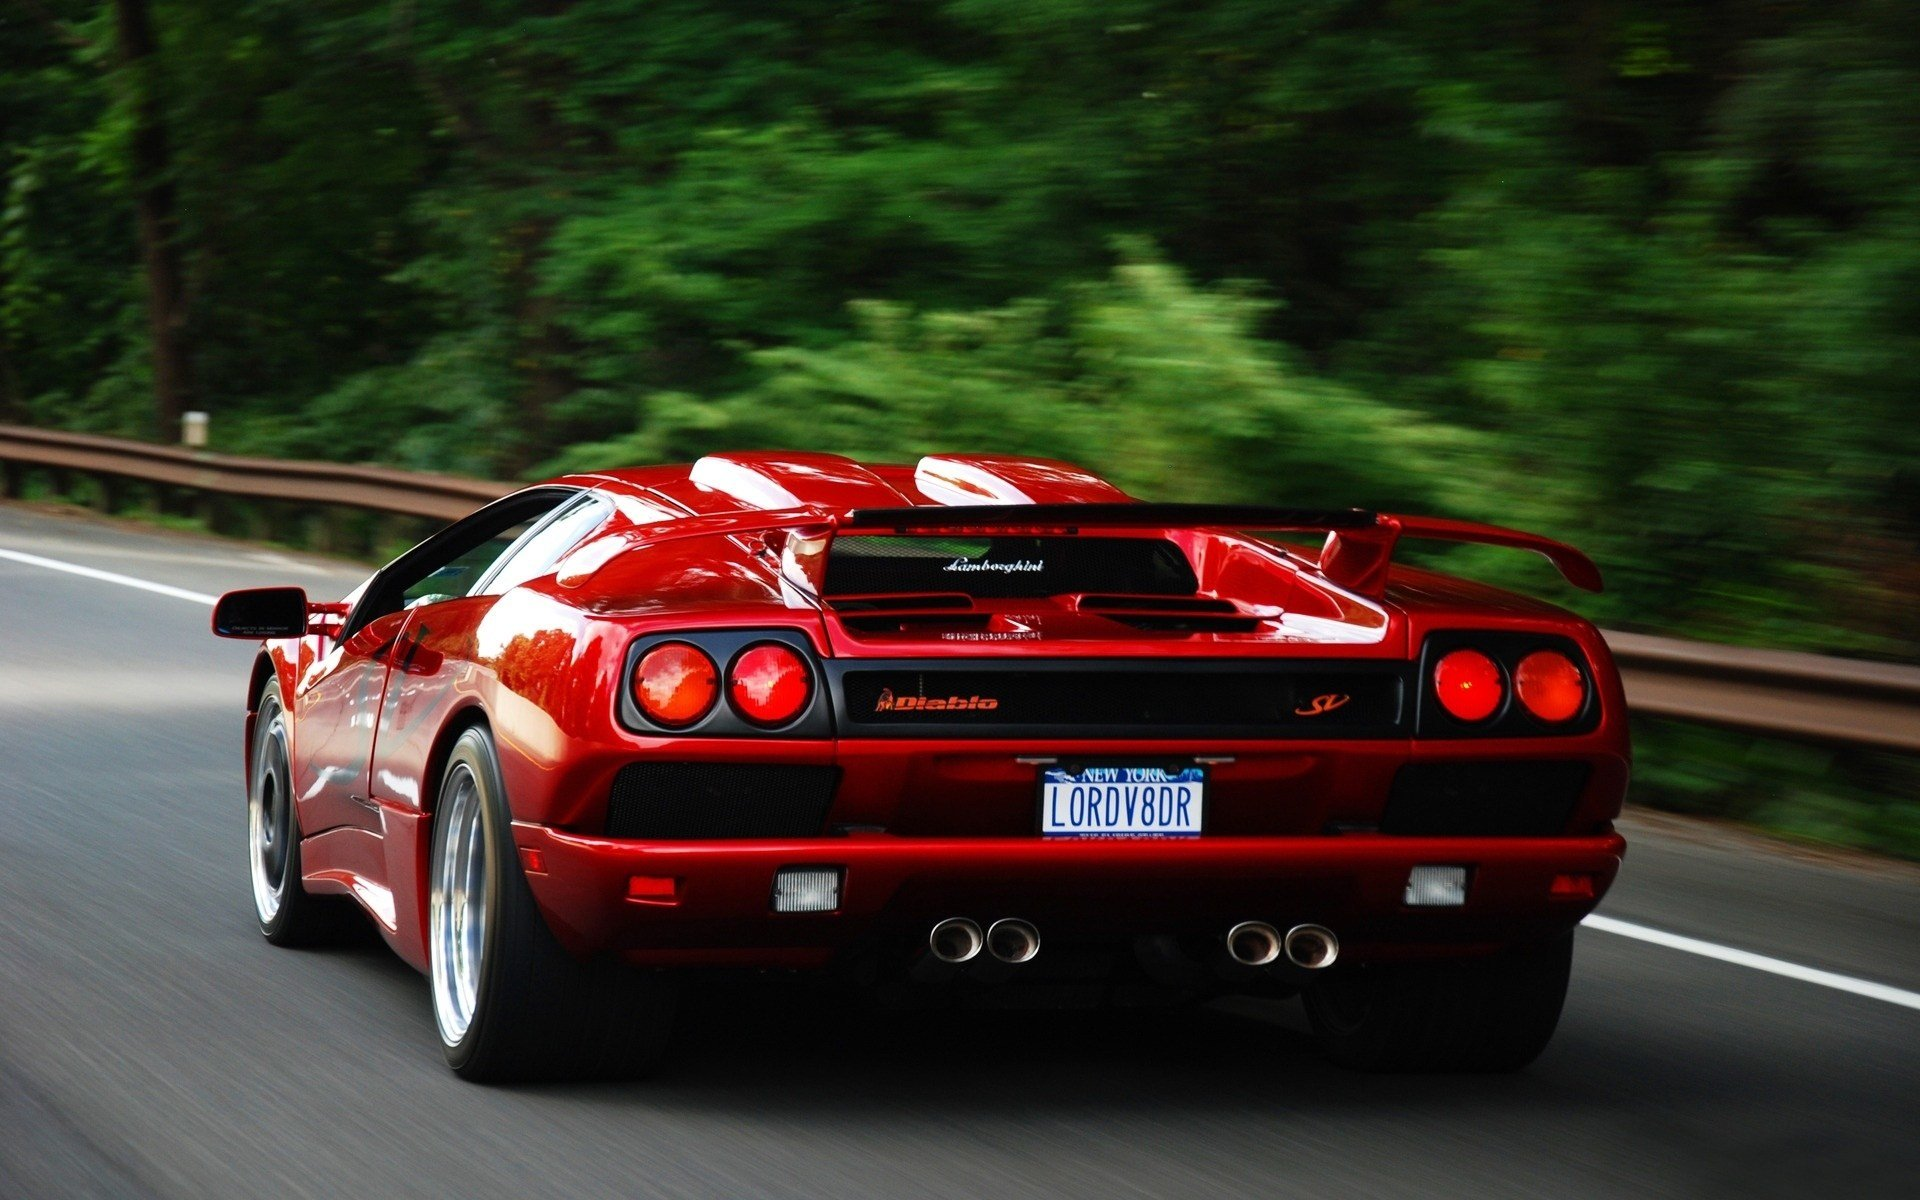 Latest Download Lamborghini Wallpapers In Hd For Desktop And Free Download